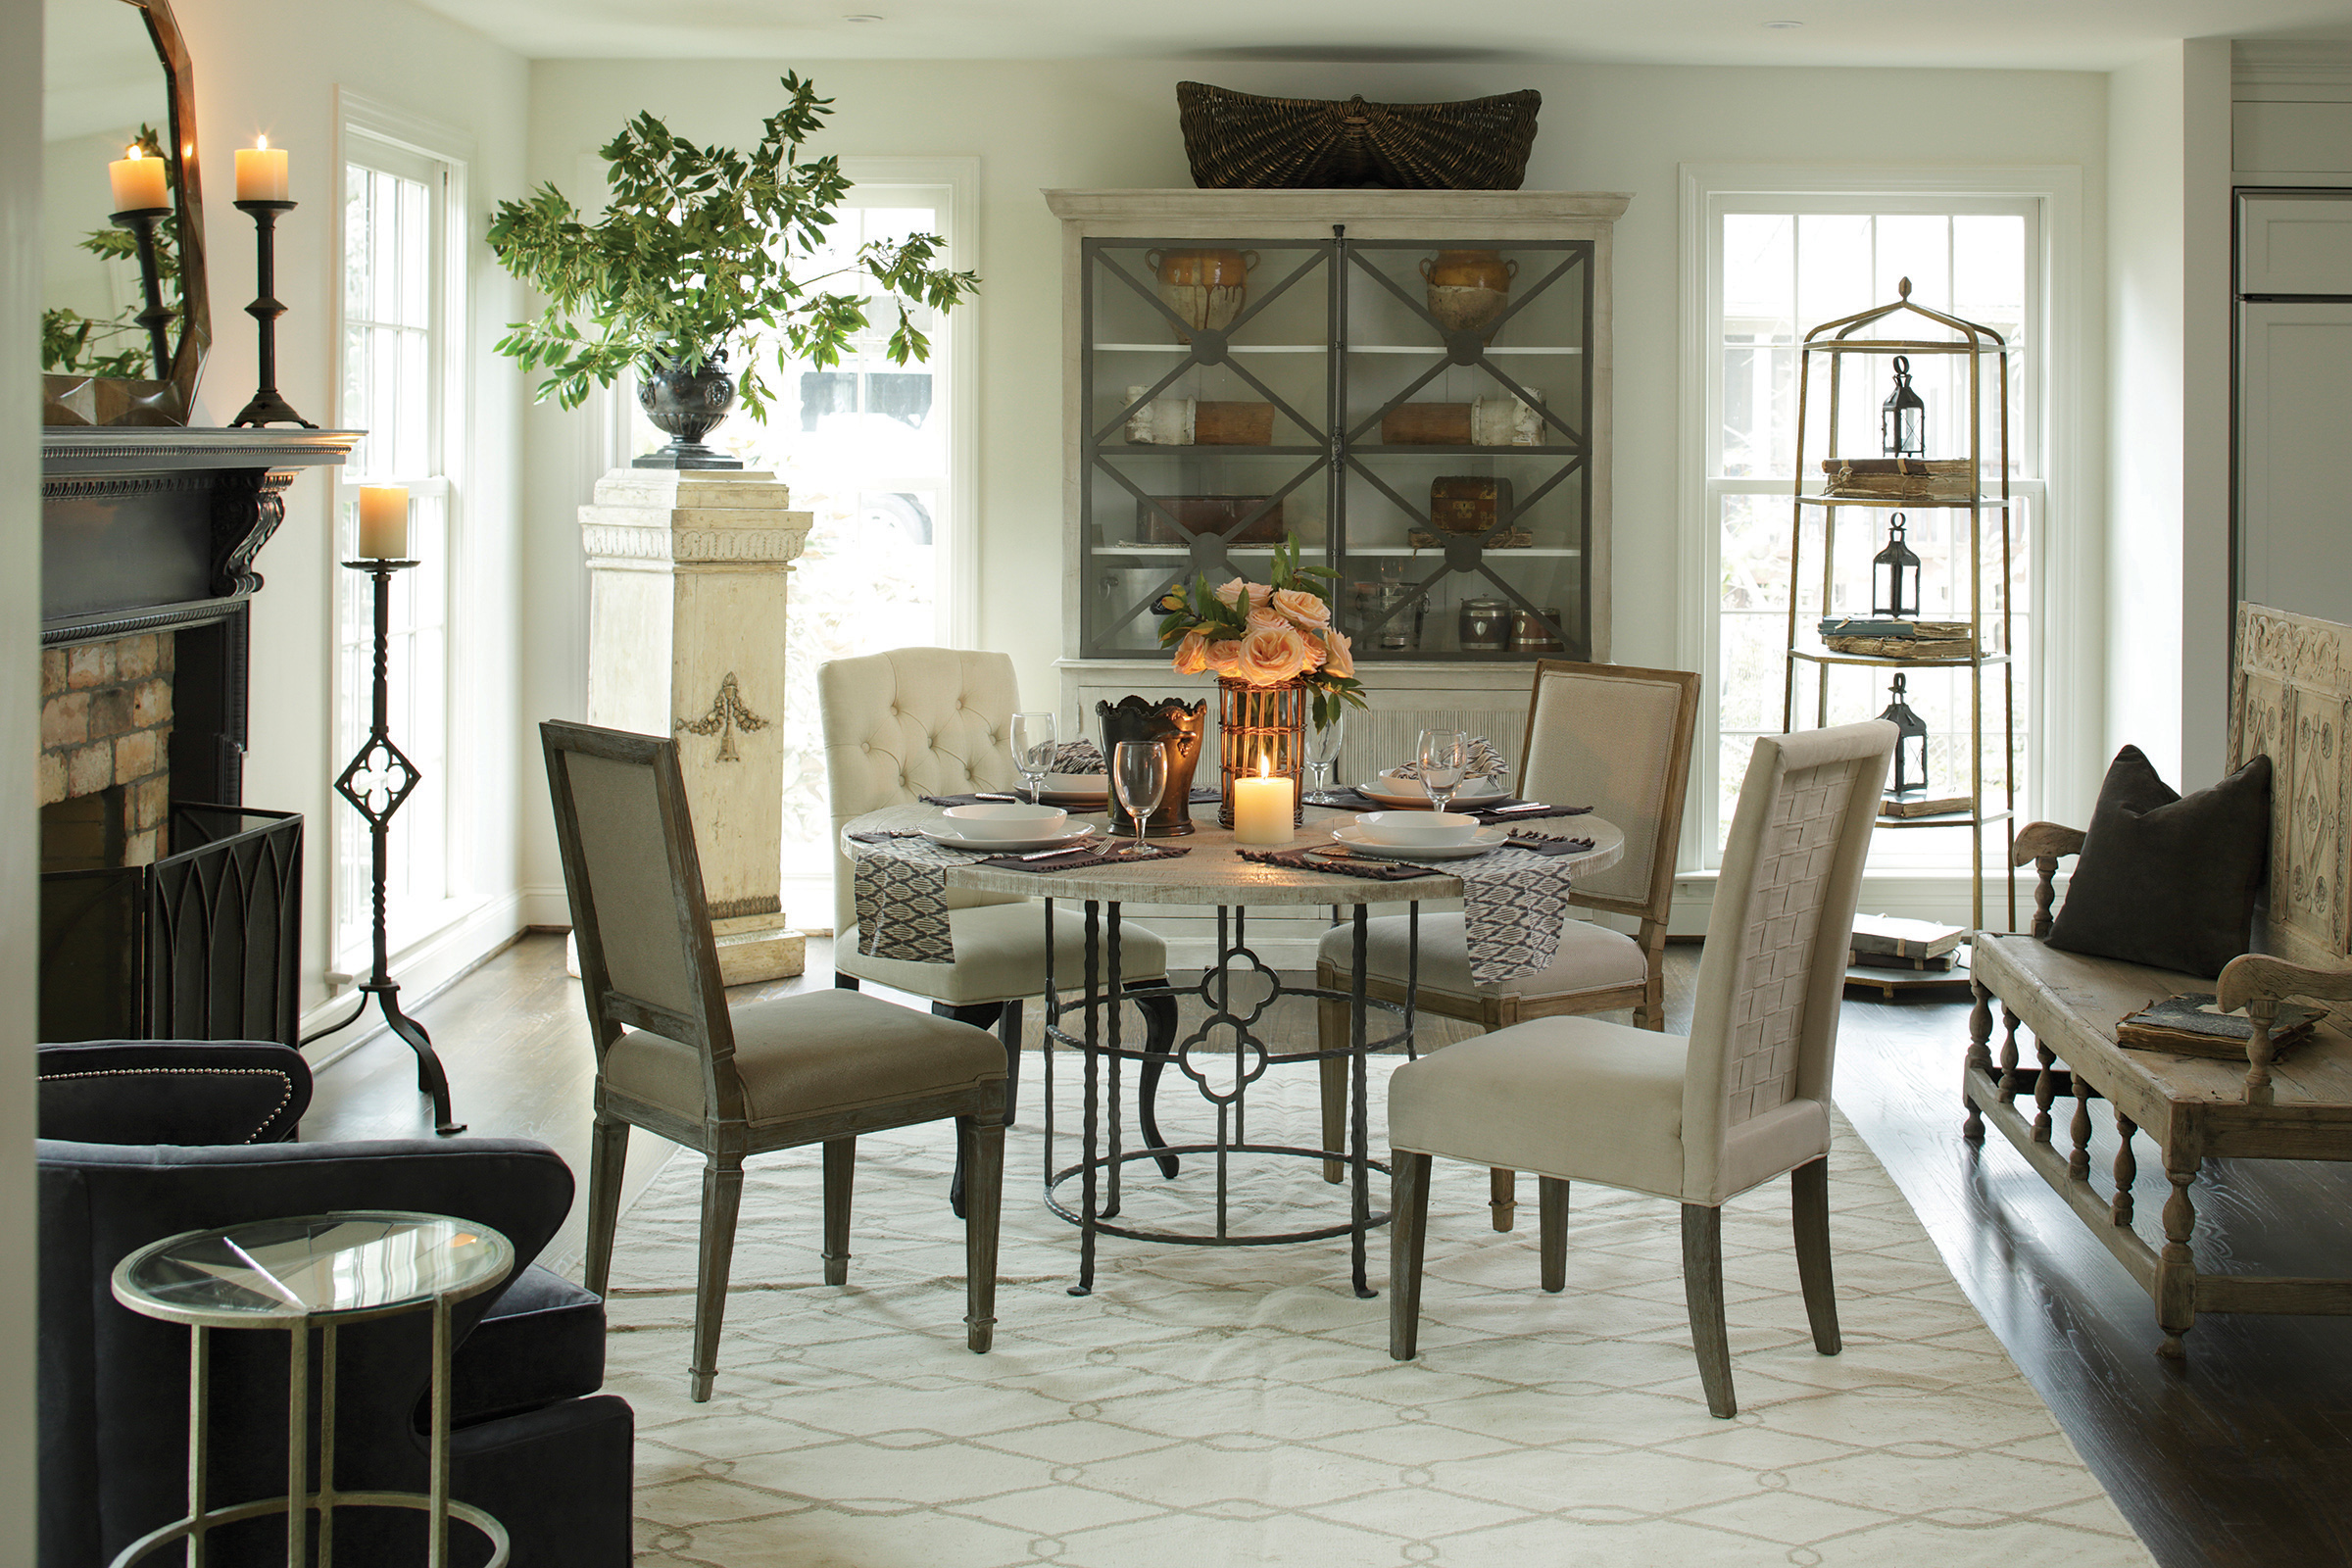 Conversational Chic Vintage Modern Meets Eclectic